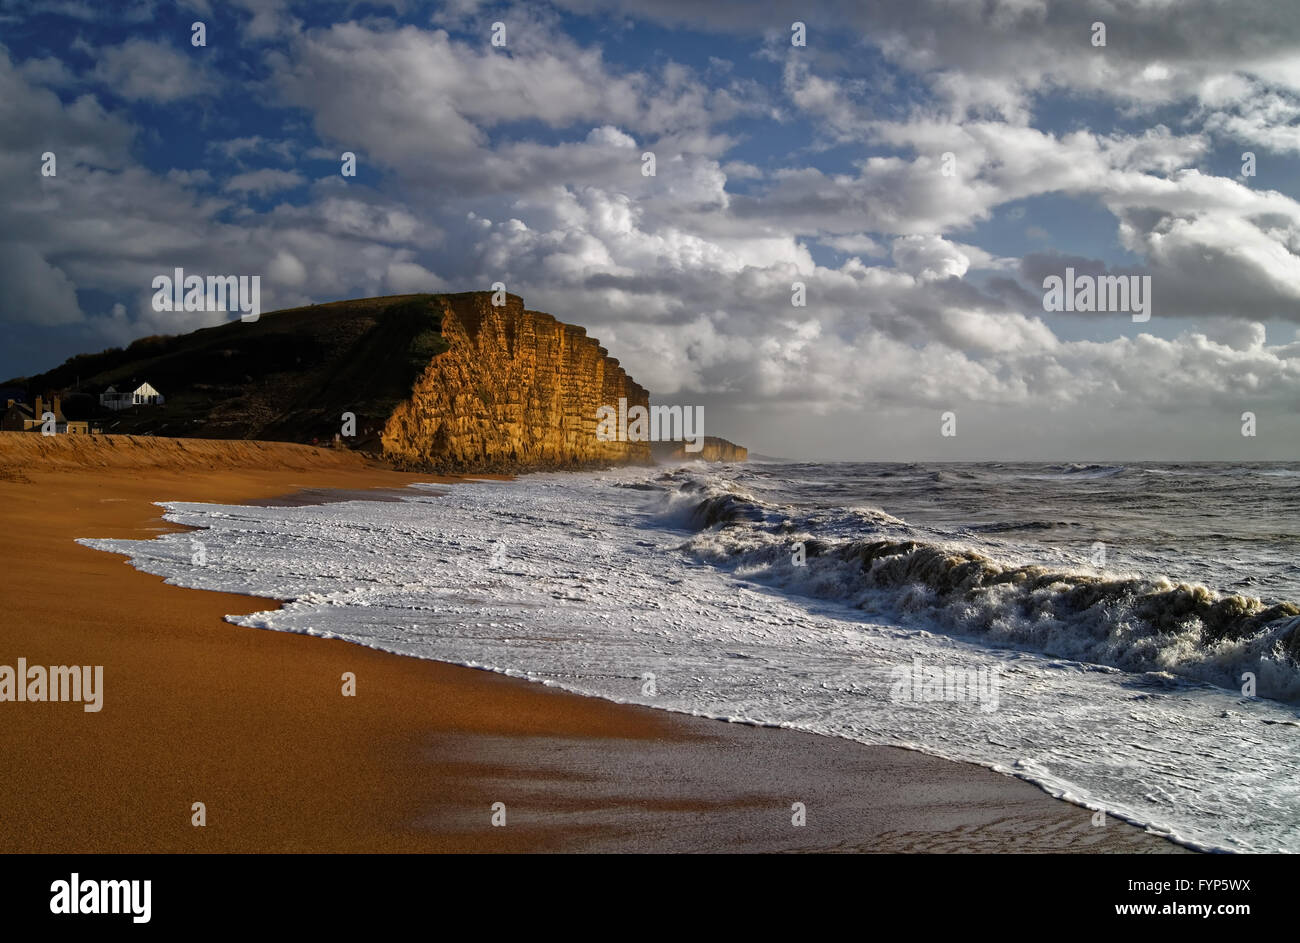 UK, Dorset, Jurassic Coast, West Bay on a Stormy Winters Day - Stock Image